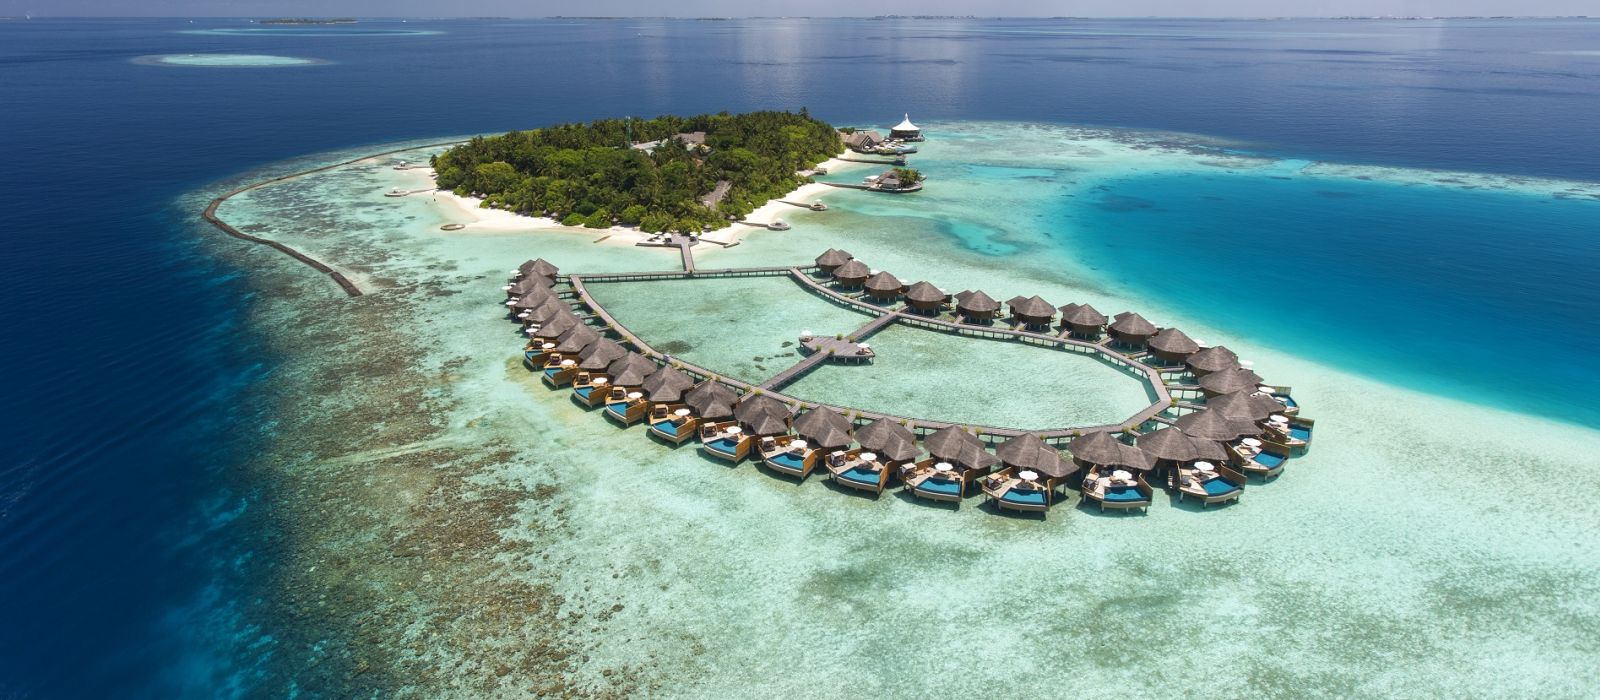 Maldives Tours & Trips